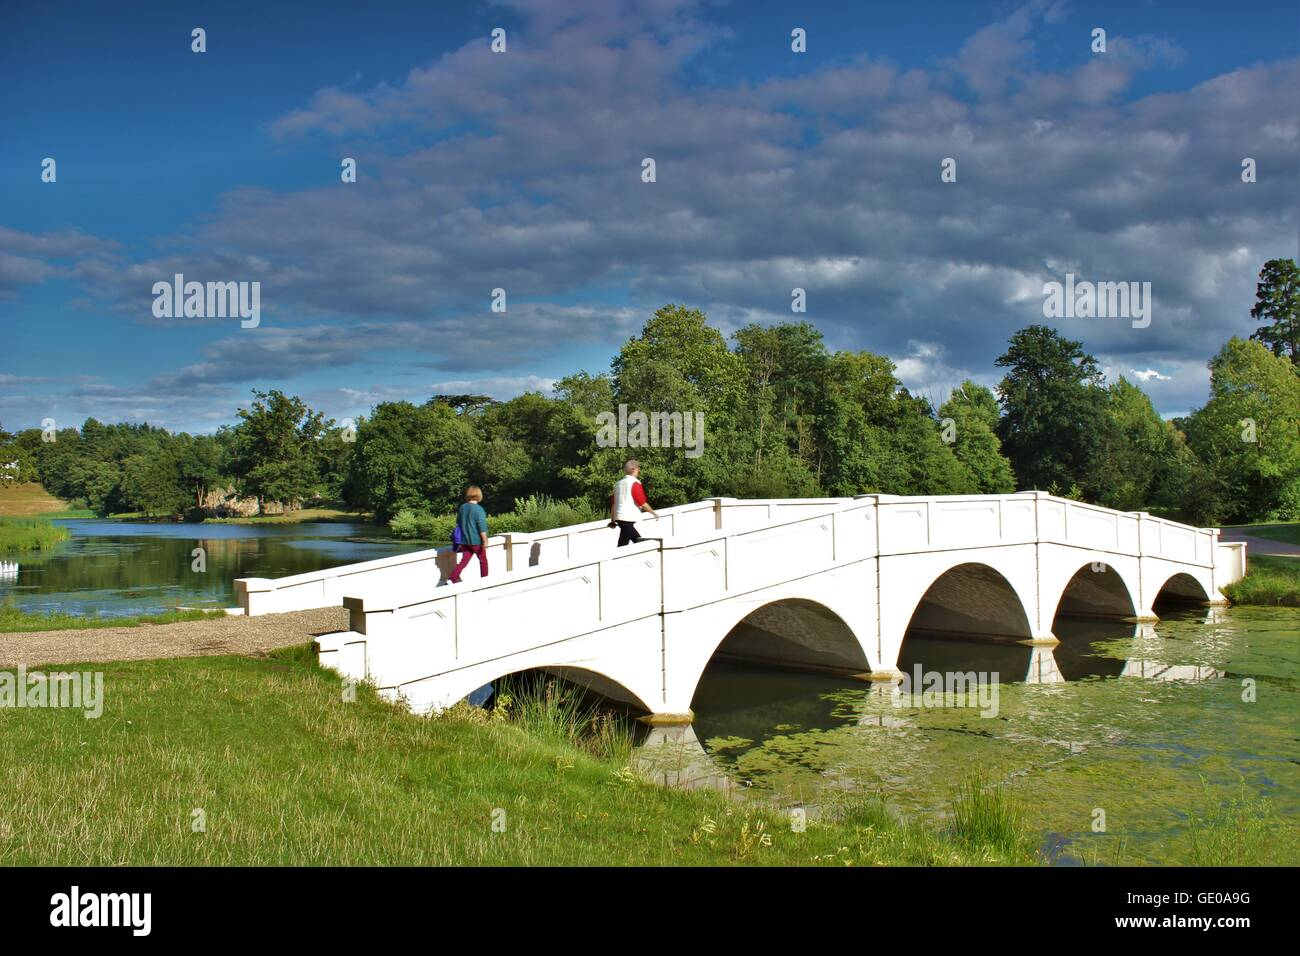 Painshill Park Cobham Surrey UK Outdoor walks in this beautiful park situated in Surrey stunning landscape nature - Stock Image